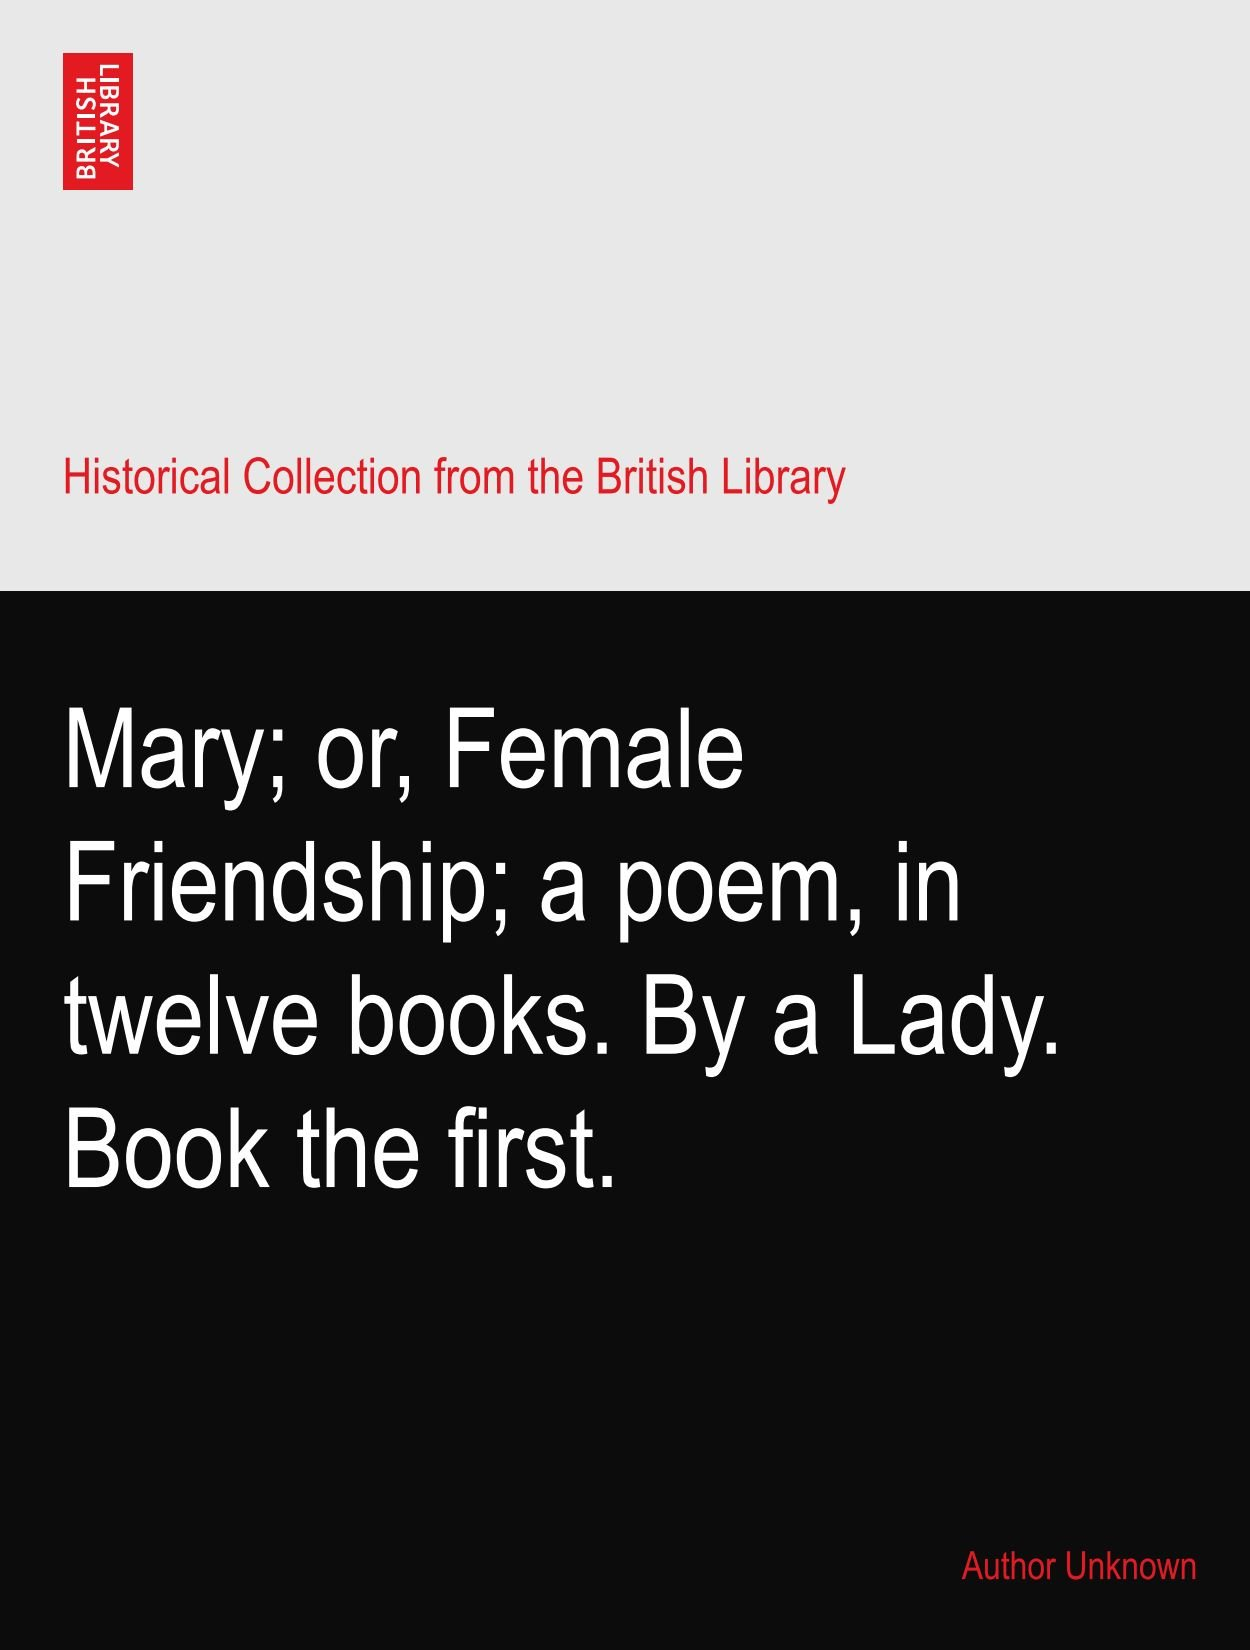 Download Mary; or, Female Friendship; a poem, in twelve books. By a Lady. Book the first. PDF